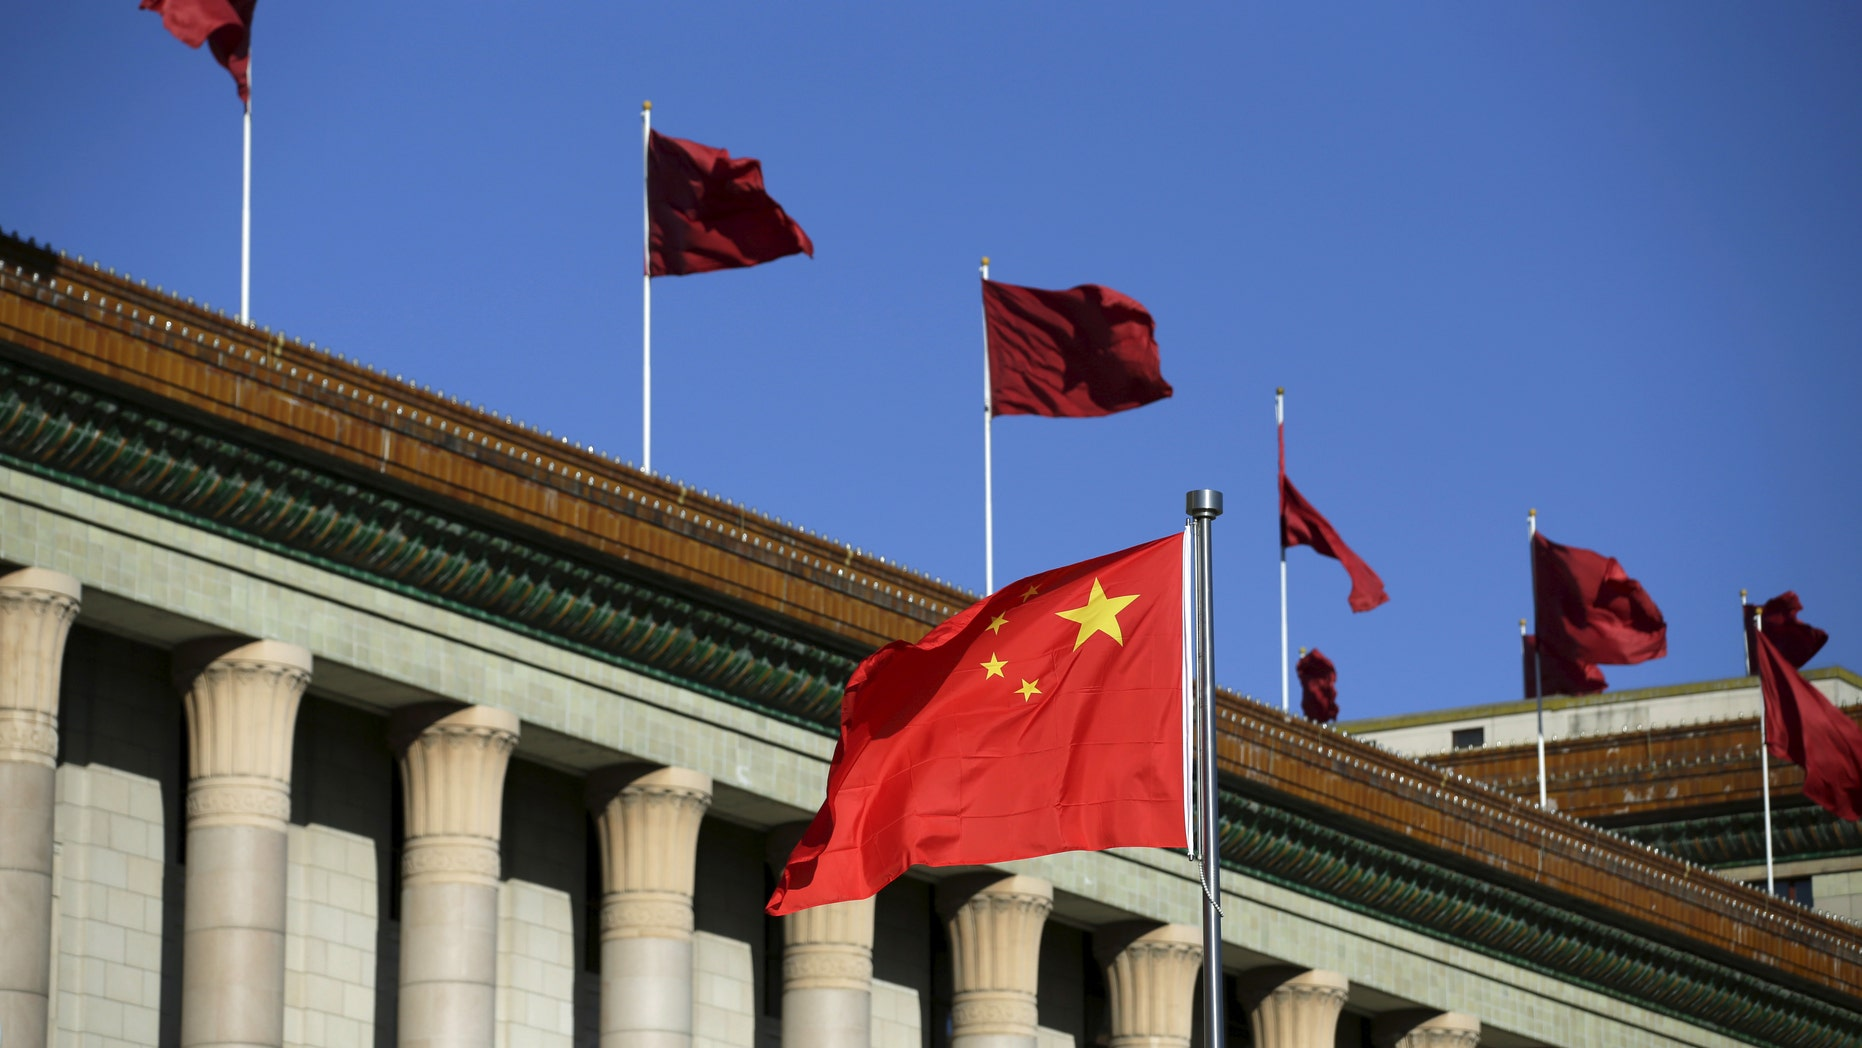 Chinese flag waves in front of the Great Hall of the People in Beijing, China, October 29, 2015. (REUTERS/Jason Lee)